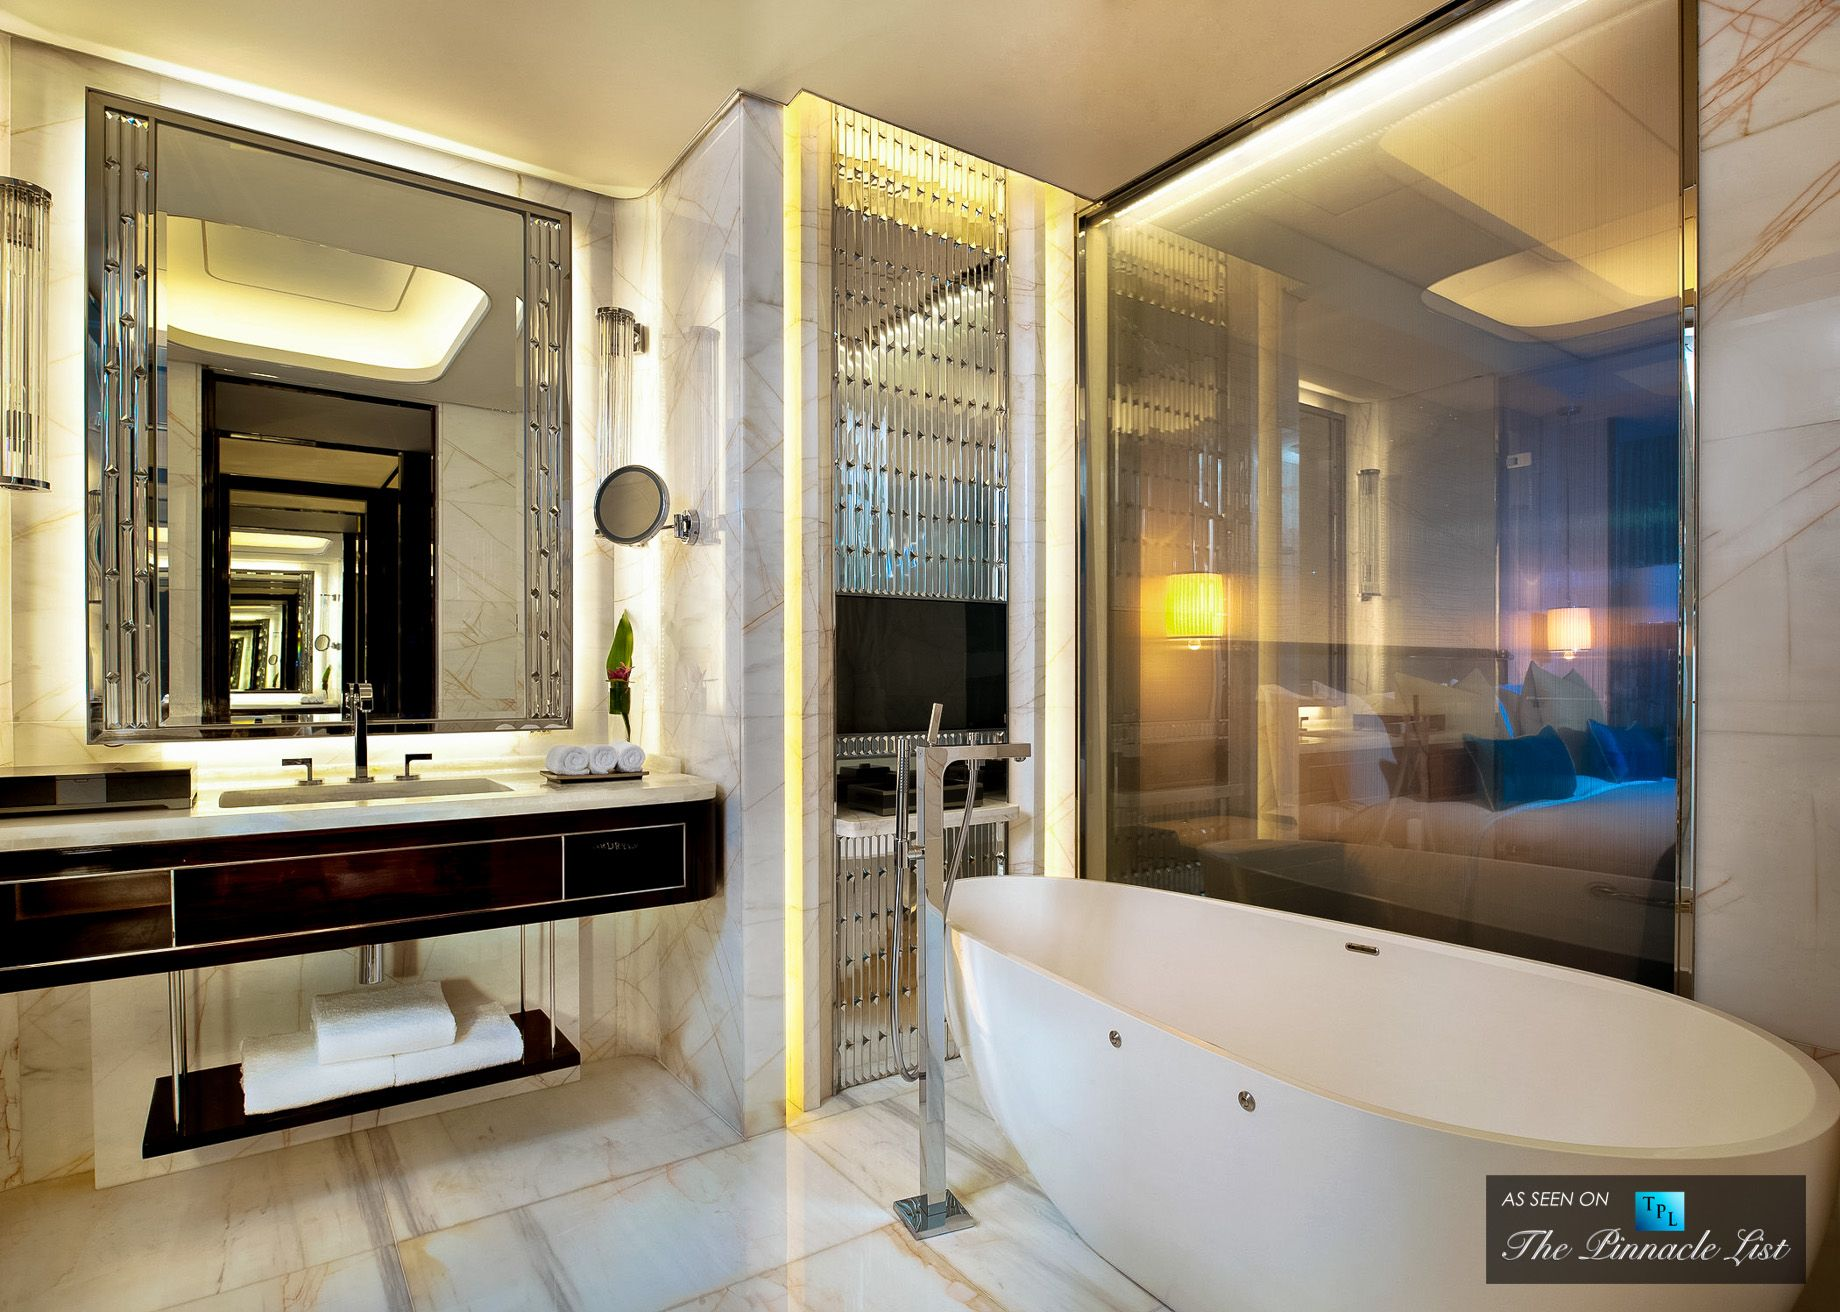 St regis luxury hotel shenzhen china deluxe bathroom for New washroom designs